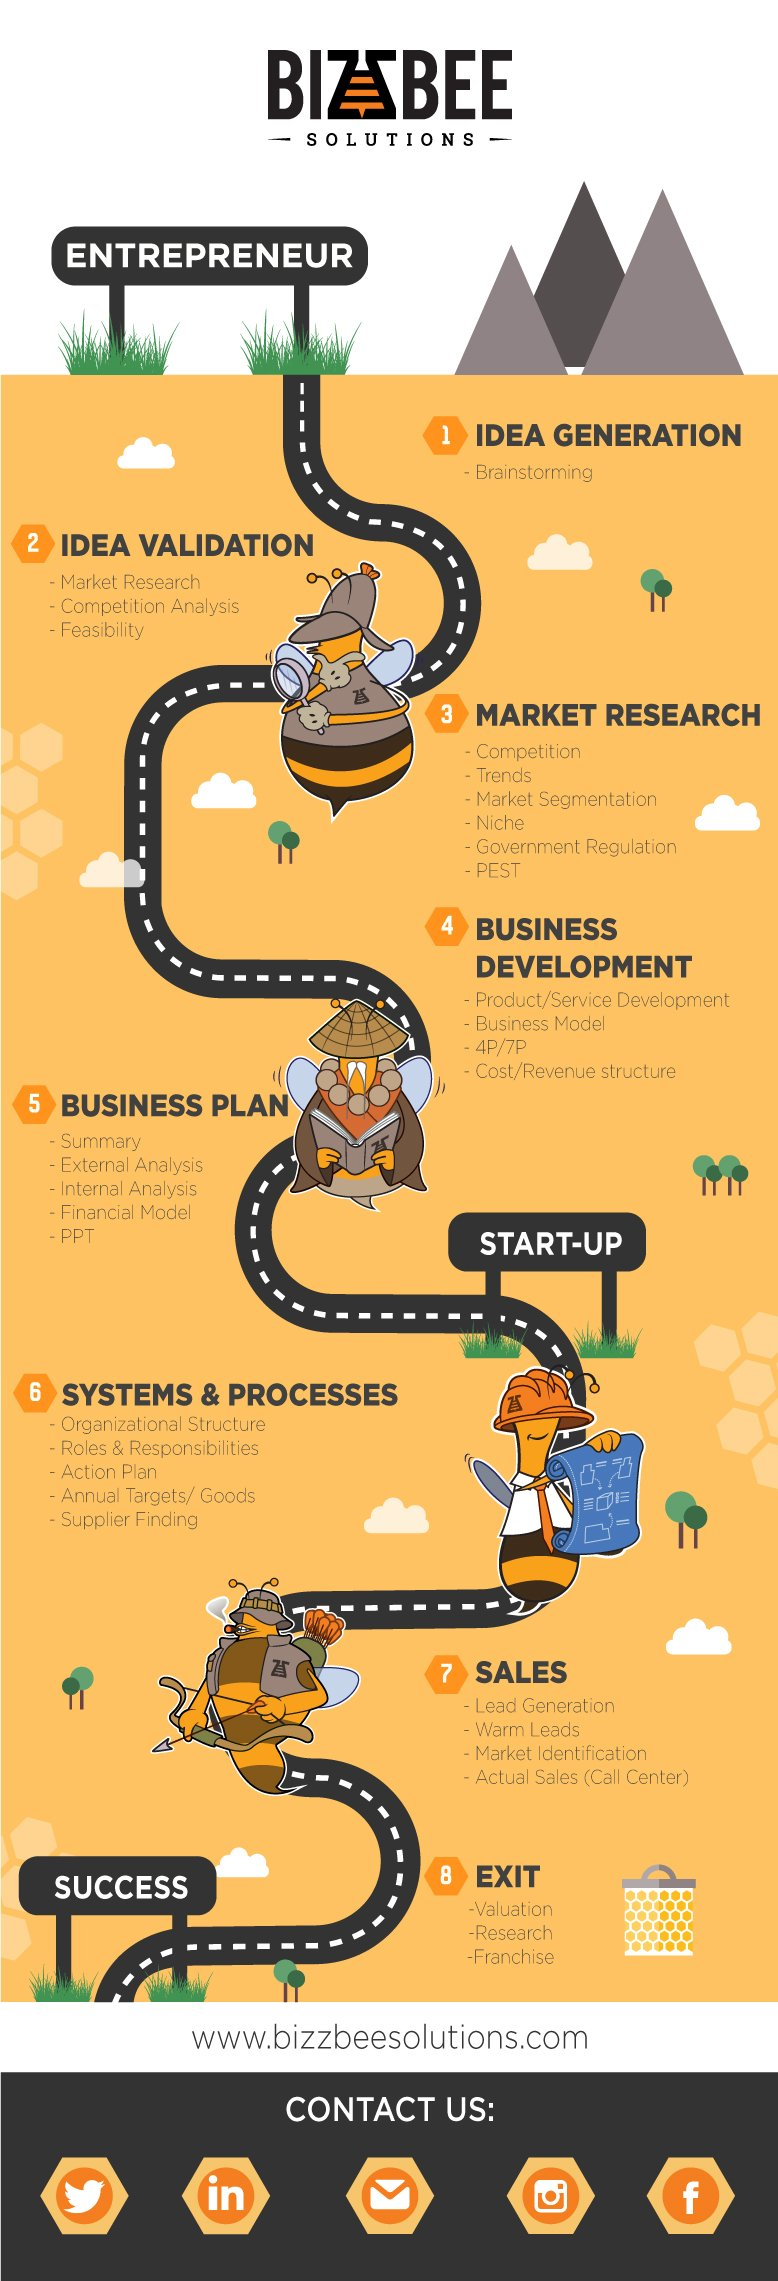 Business Development Stages Infographic